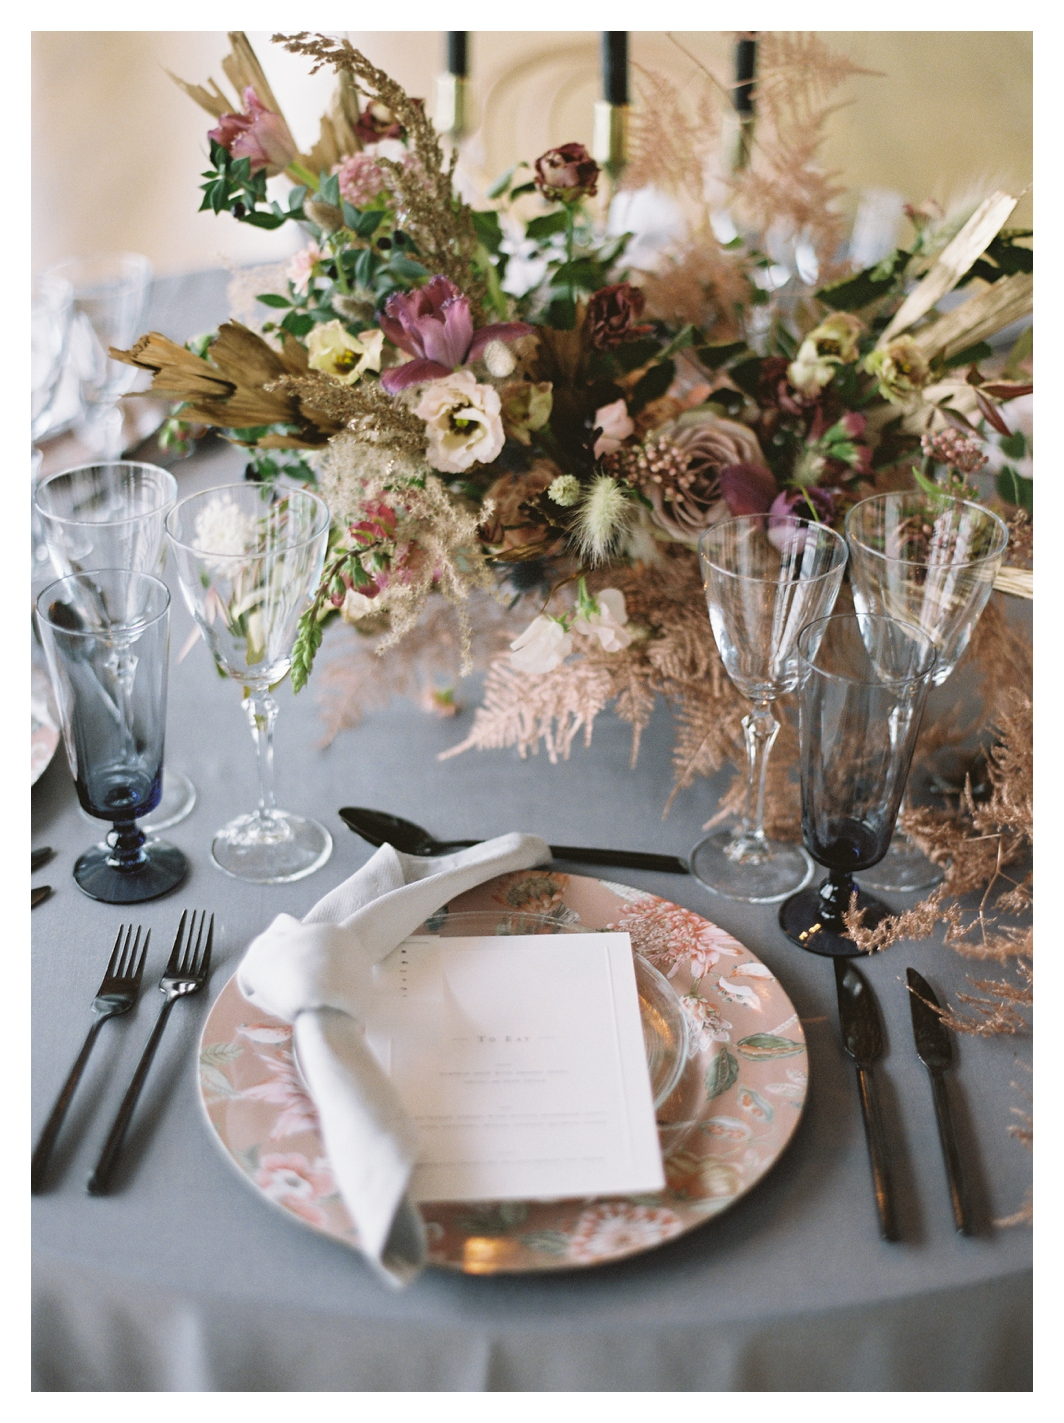 wedding table details, wedding table, wedding table setting, pink charger plate, wedding flowers centerpiece